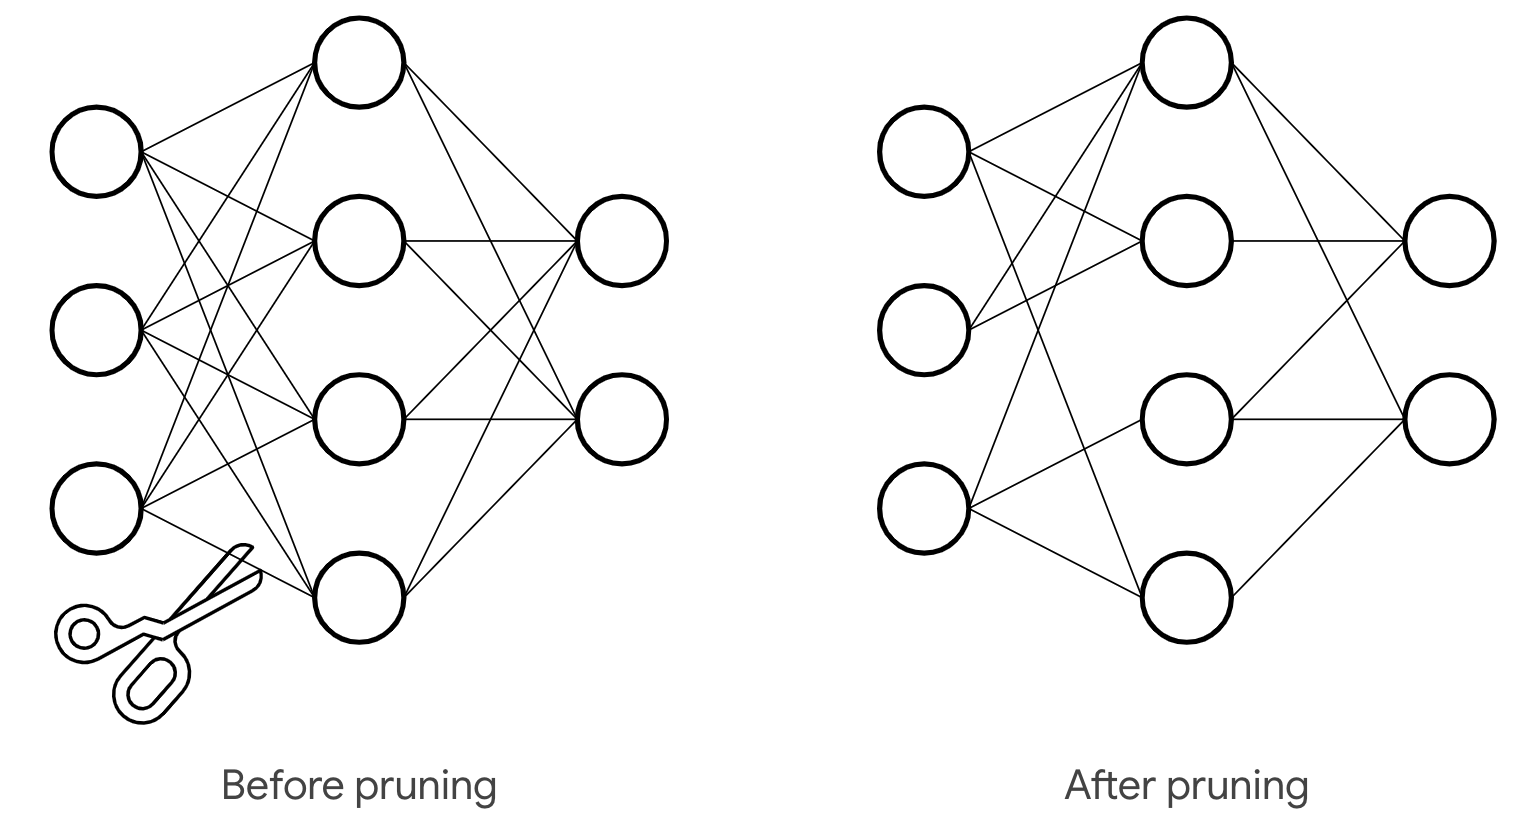 neural network layers before and after pruning